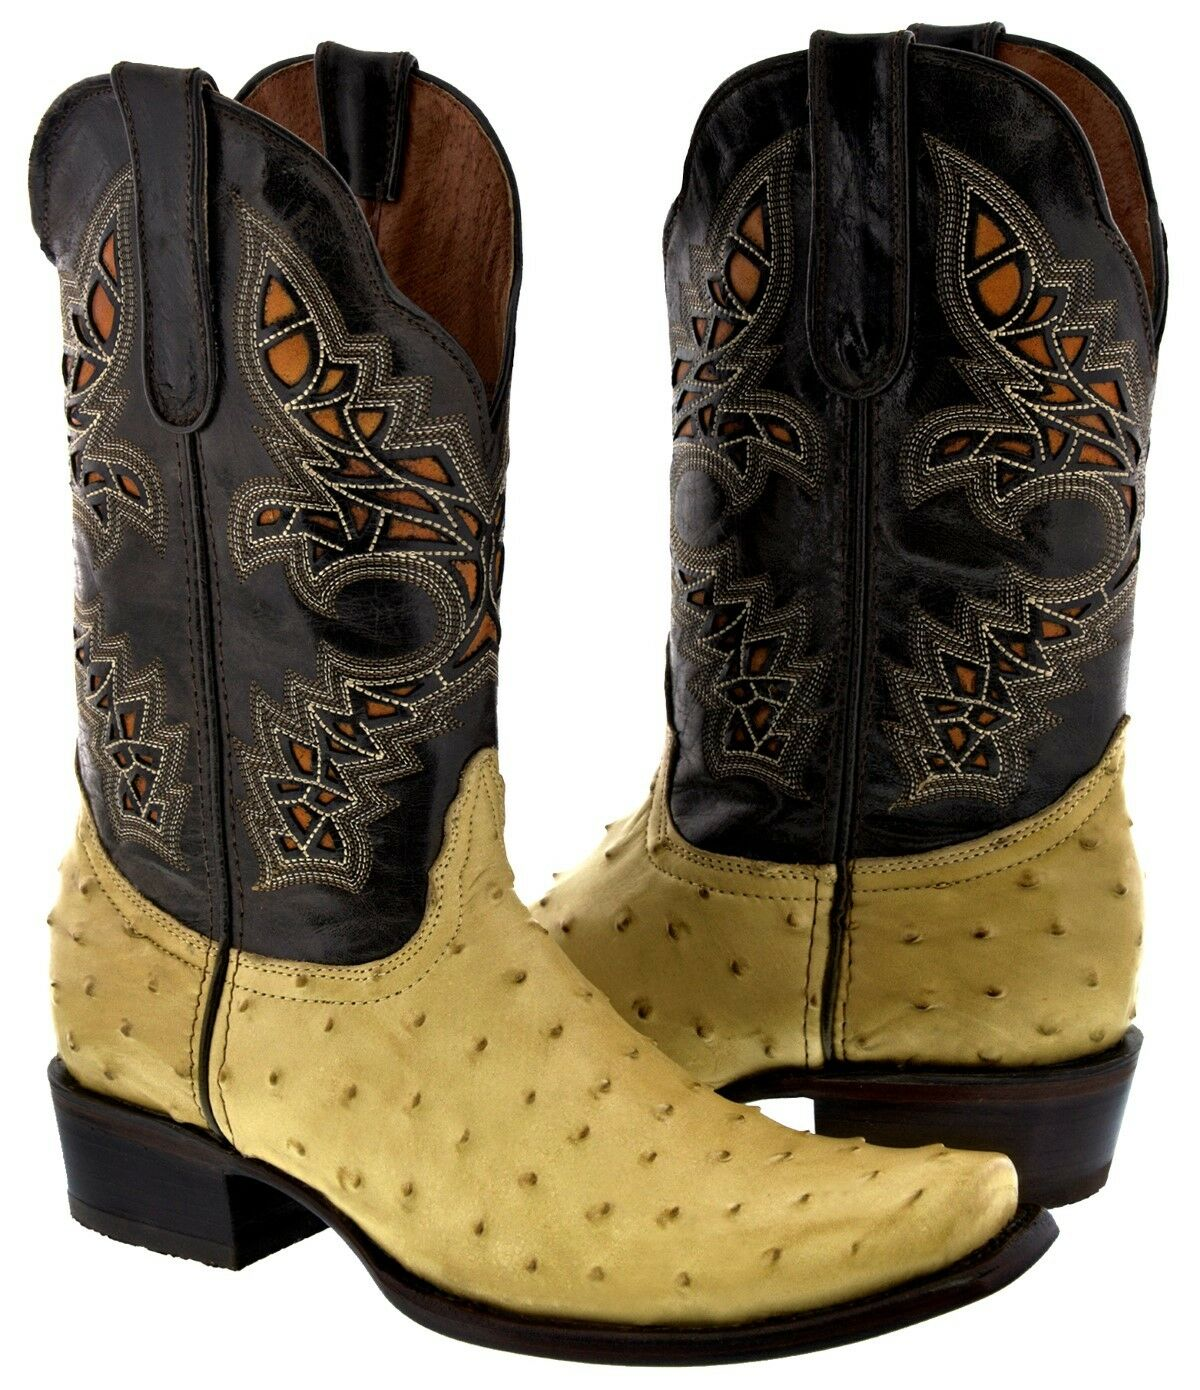 Mens Beige Sand Ostrich Design Western Wear Leather Rodeo Cowboy Stiefel Square